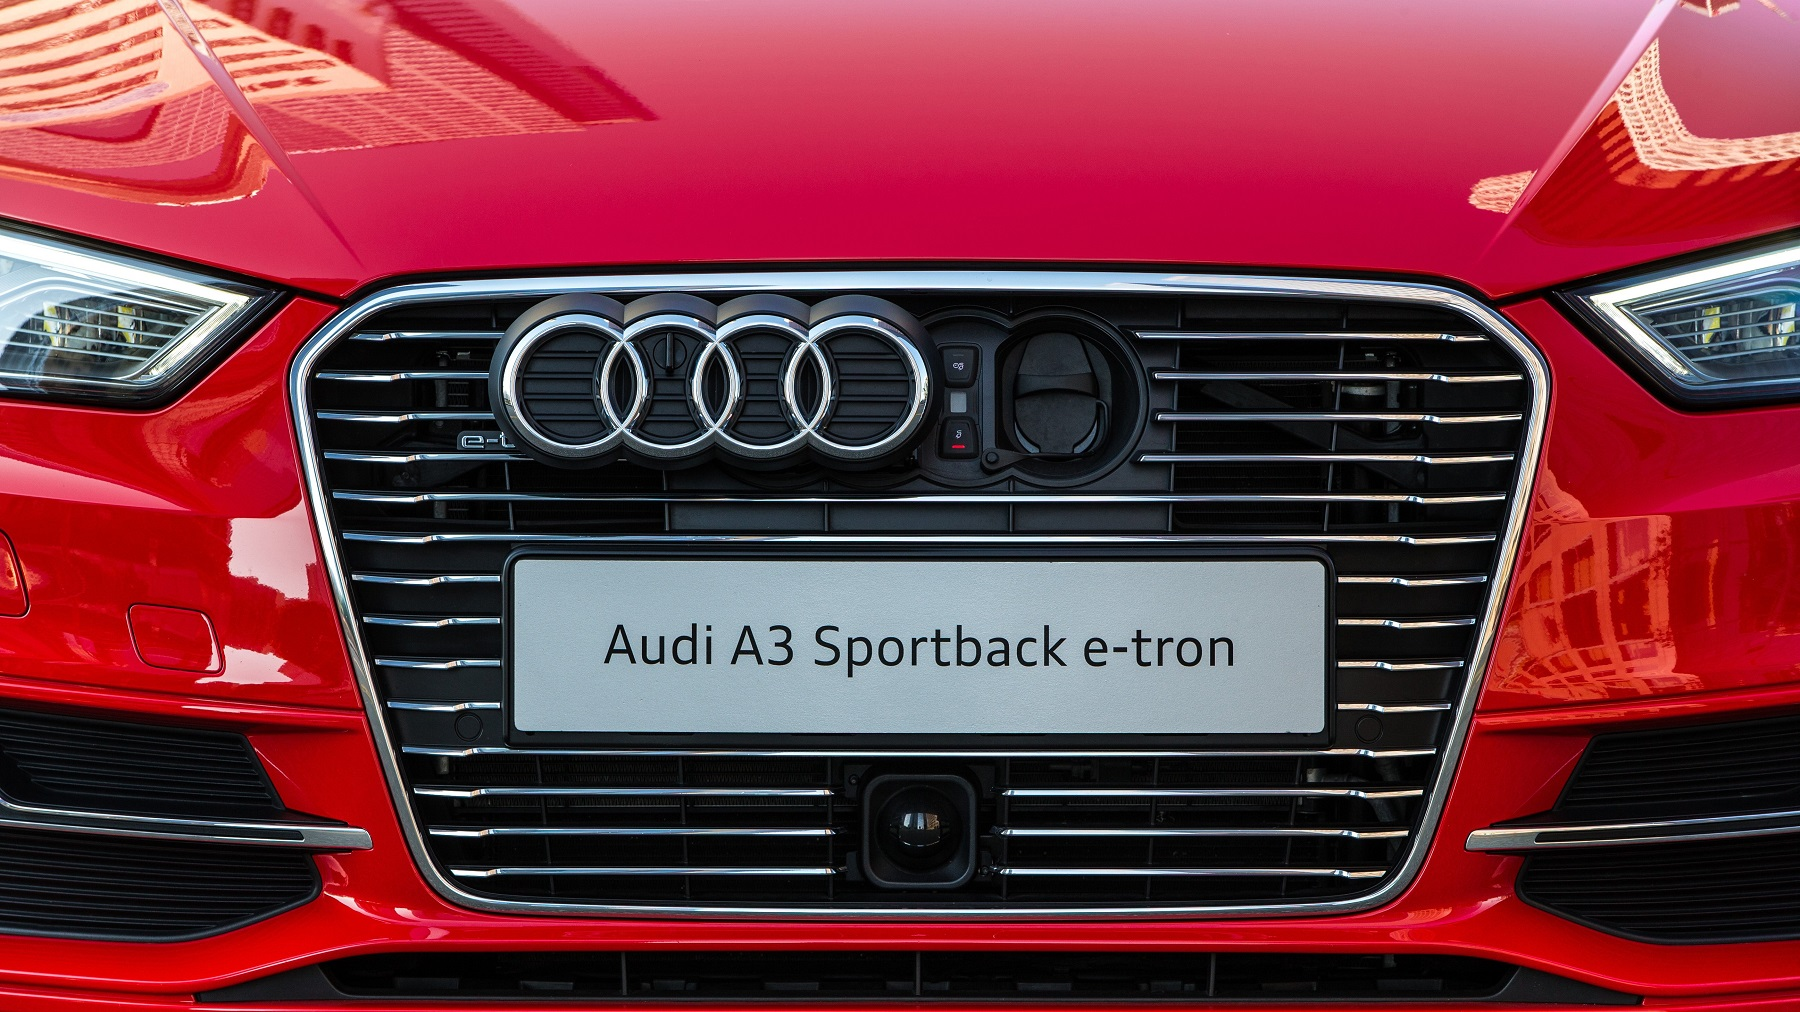 Manufacturer photo: The 2016 Audi A3 Sportback e-tron combines the benefits of a hybrid powertrain with all-electric range